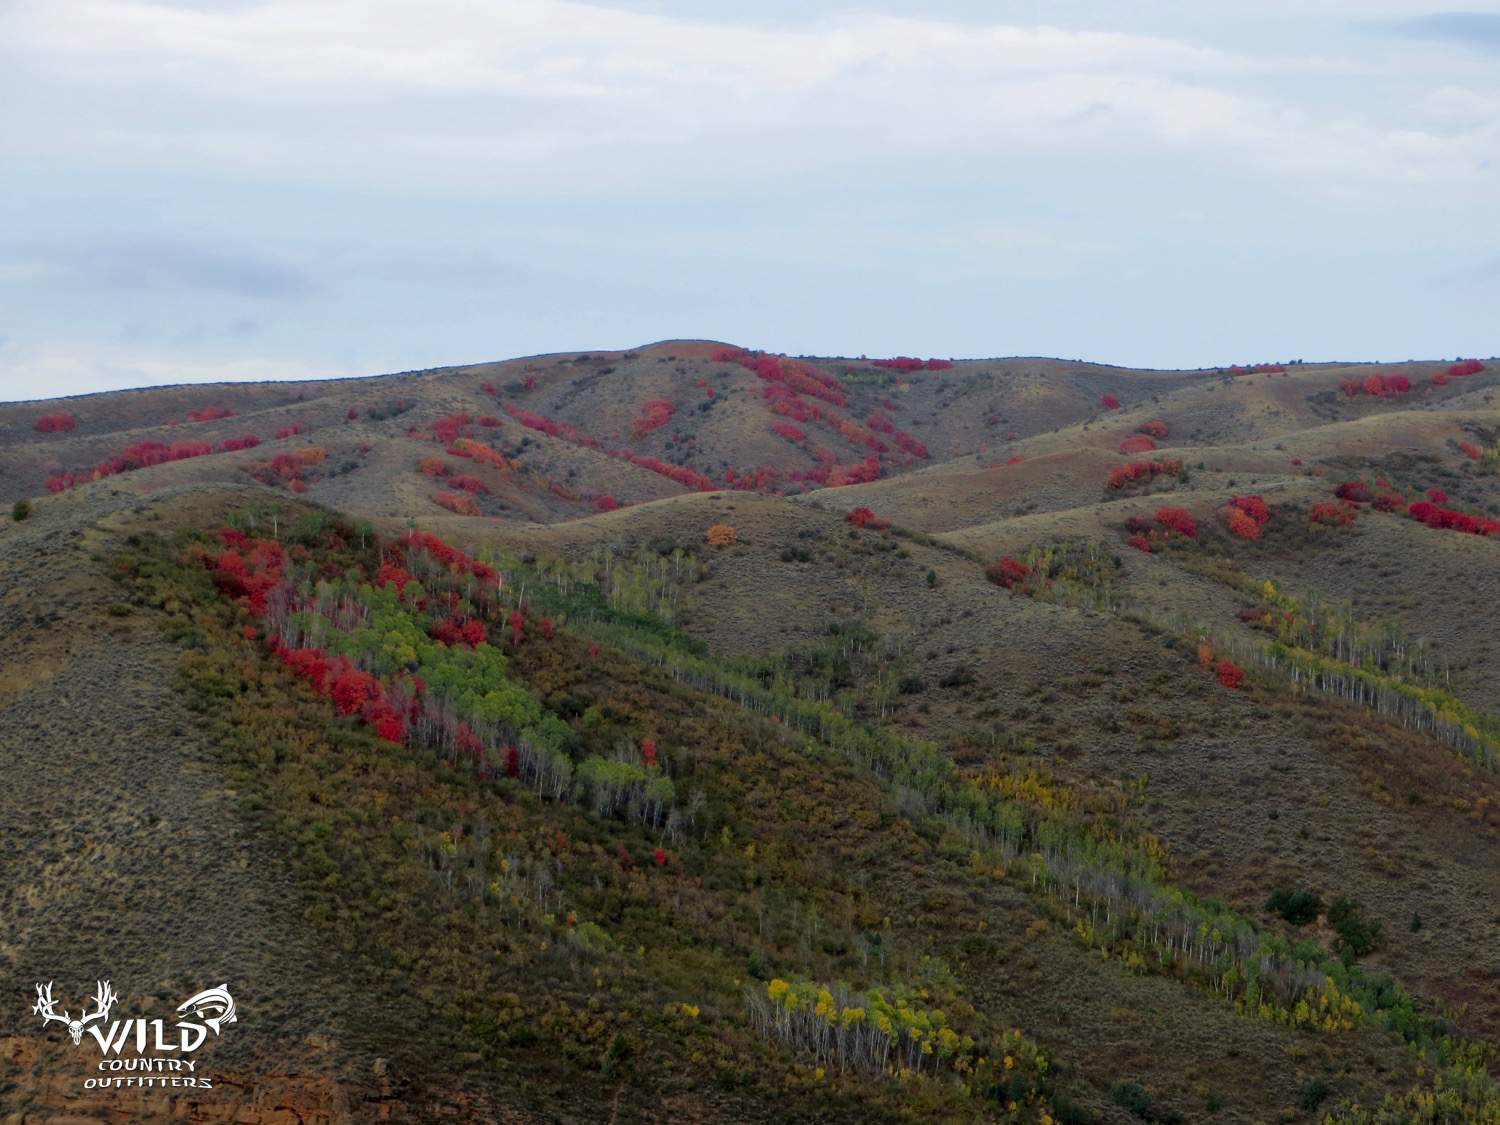 deseret ranch rocky mountains utah red maples.jpg